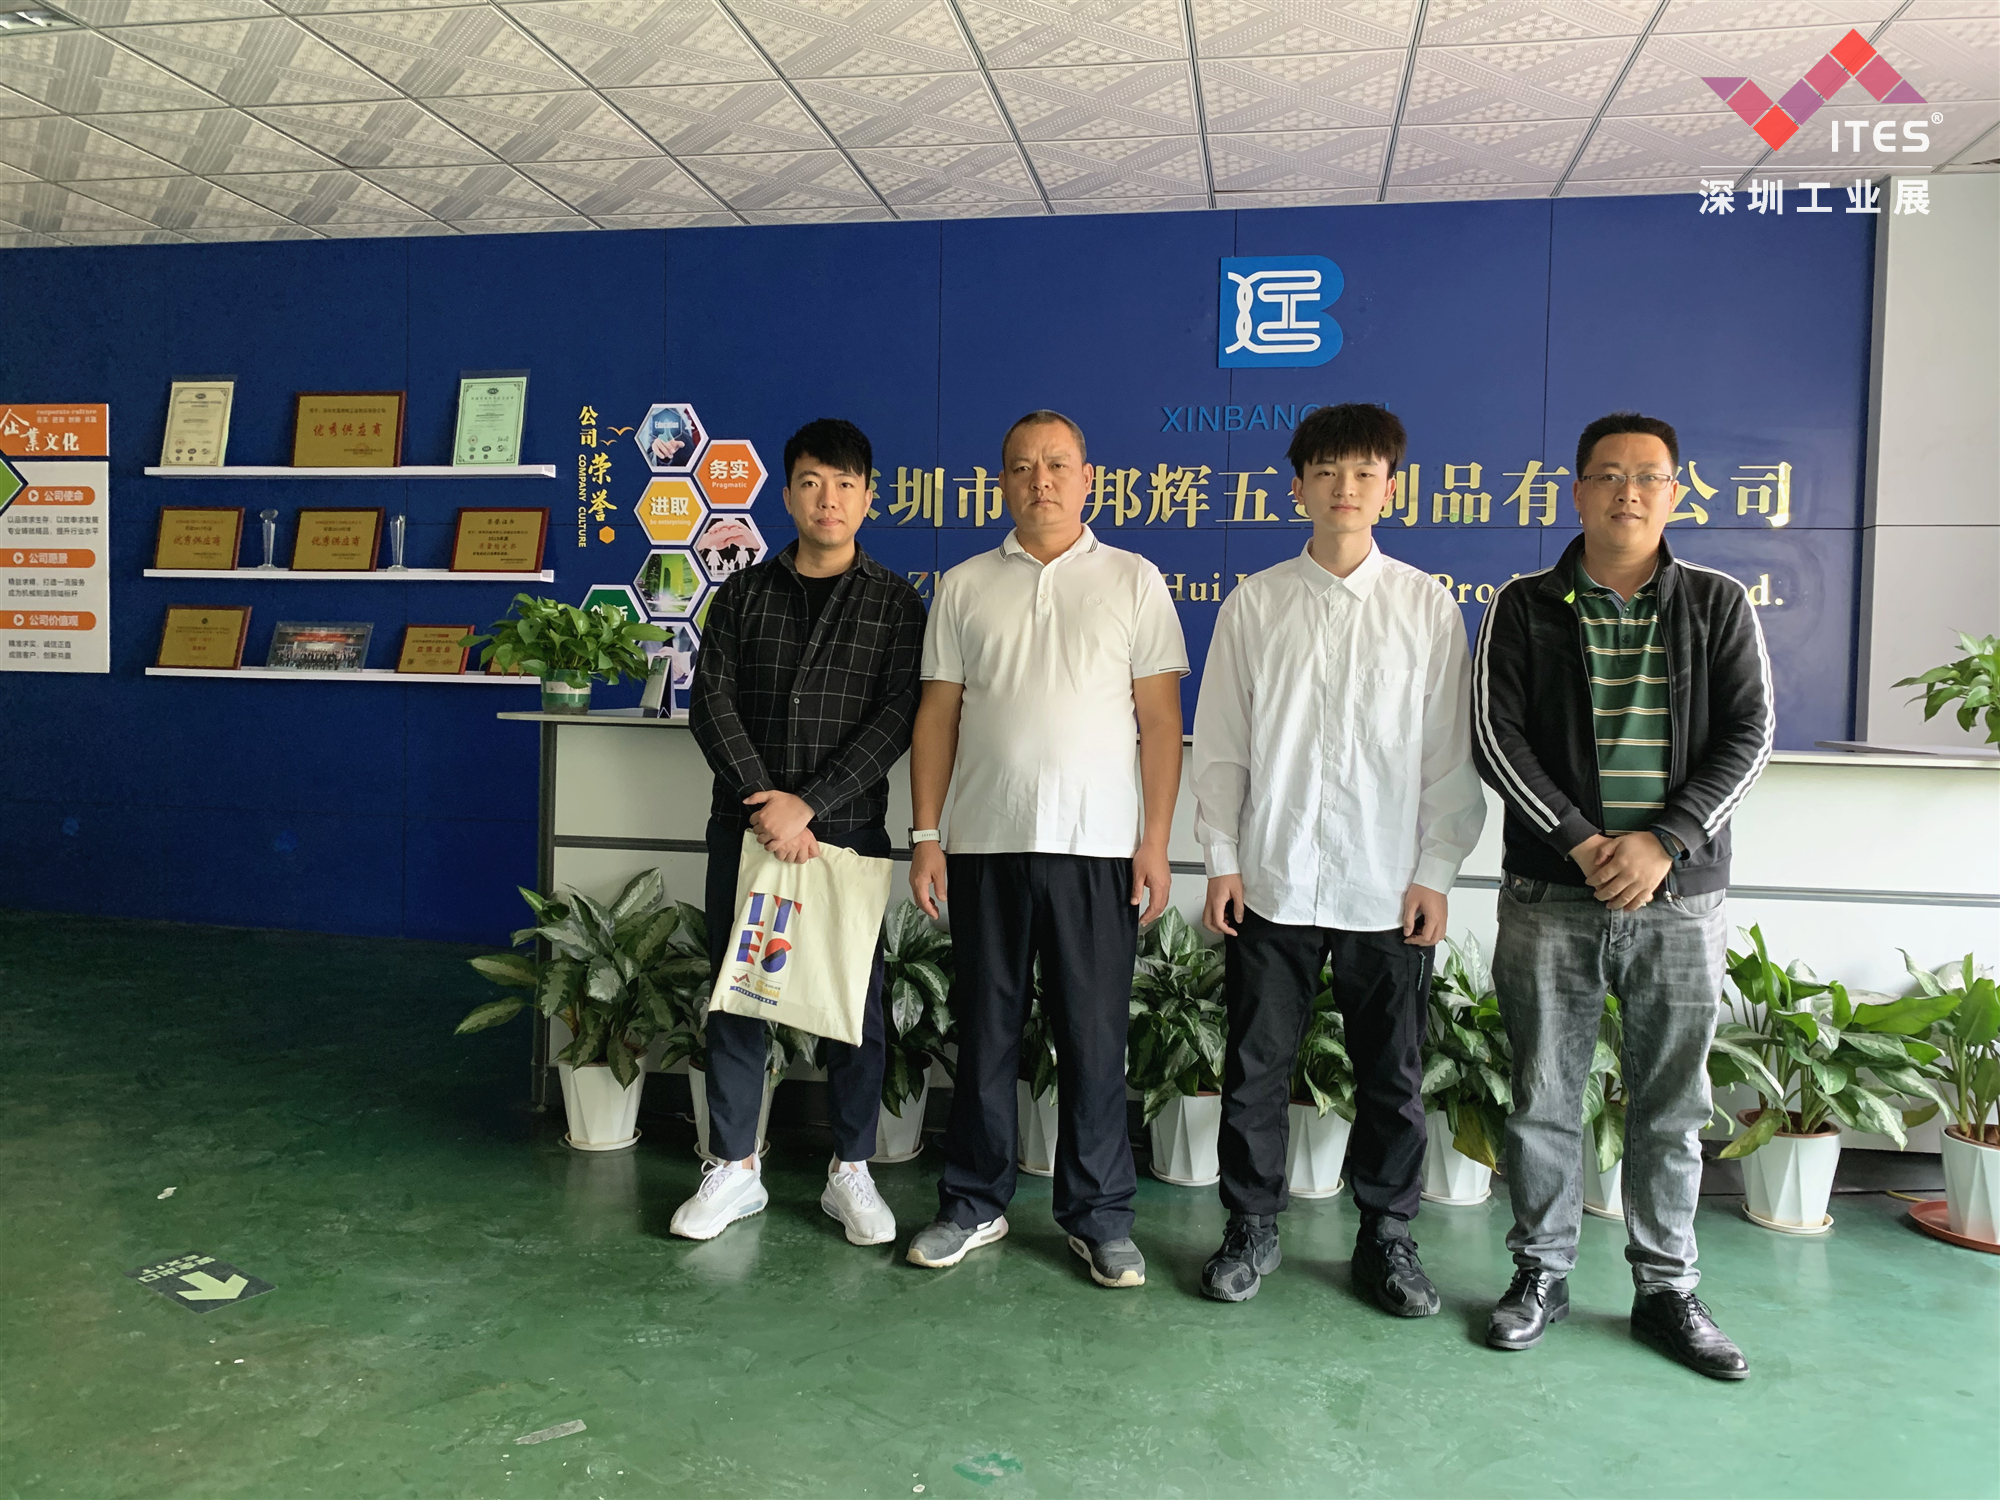 Business Visit | Shenzhen Xinbanghui Hardware Products, a company focused on hardware automation equipment parts manufacturing.